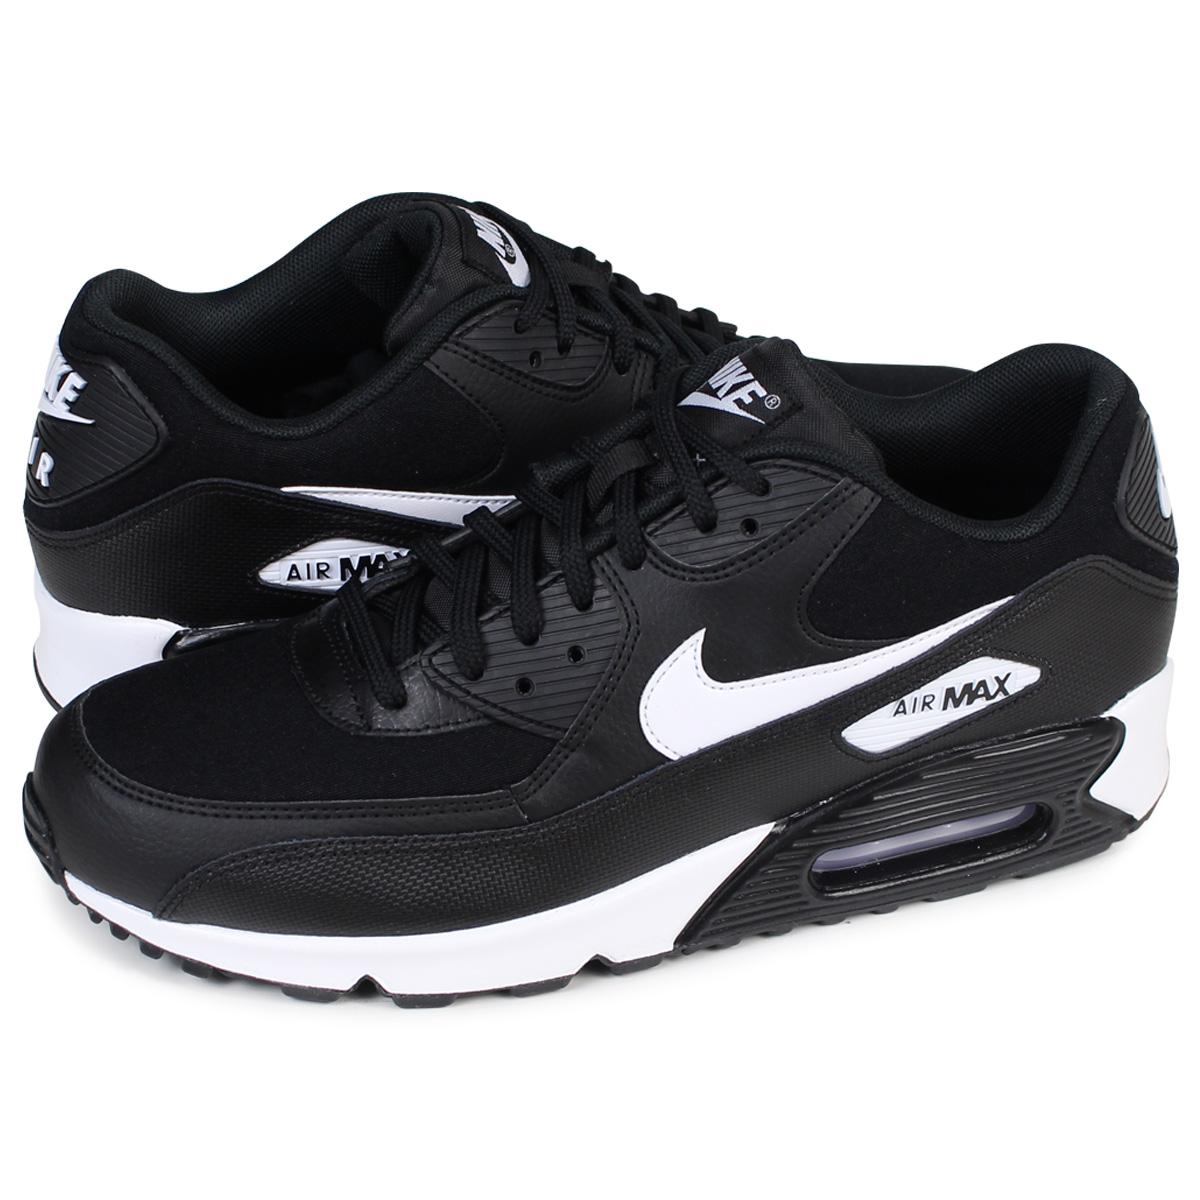 the best attitude b1d0e 2b67b NIKE WMNS AIR MAX 90 Kie Ney AMAX 90 Lady's sneakers 325,213-047 men's  shoes black [load planned Shinnyu load in reservation product 12/21  containing] ...